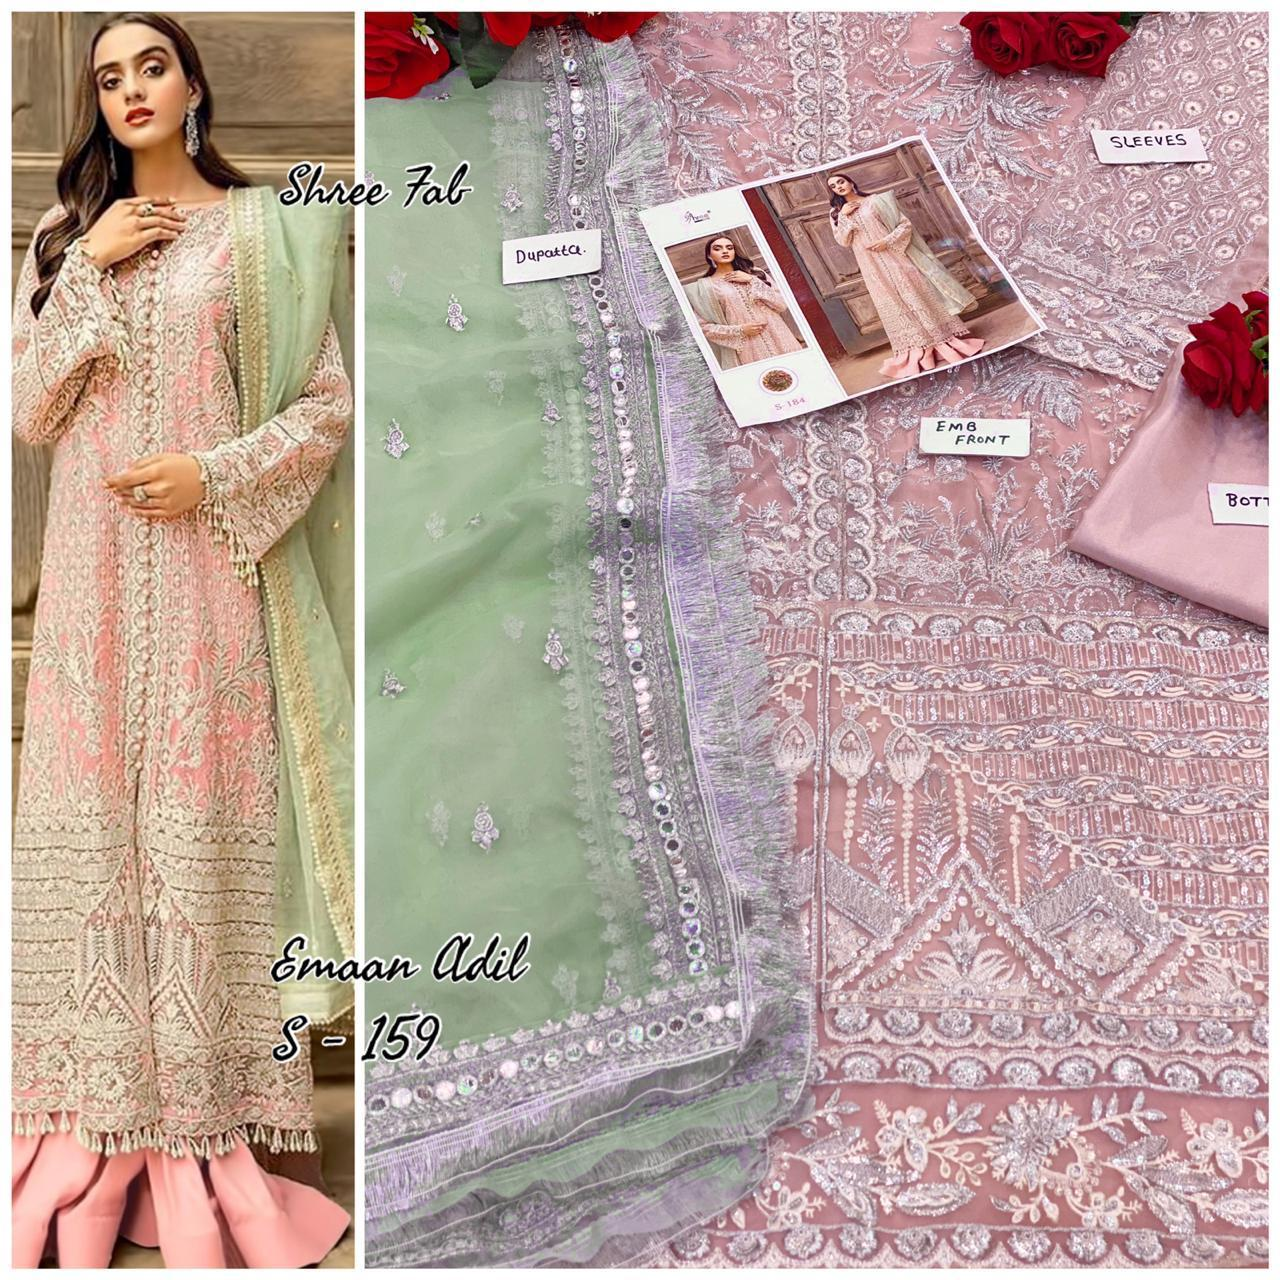 SHREE FABS S 184 PAKISTANI SUITS BEST PRICE (1)